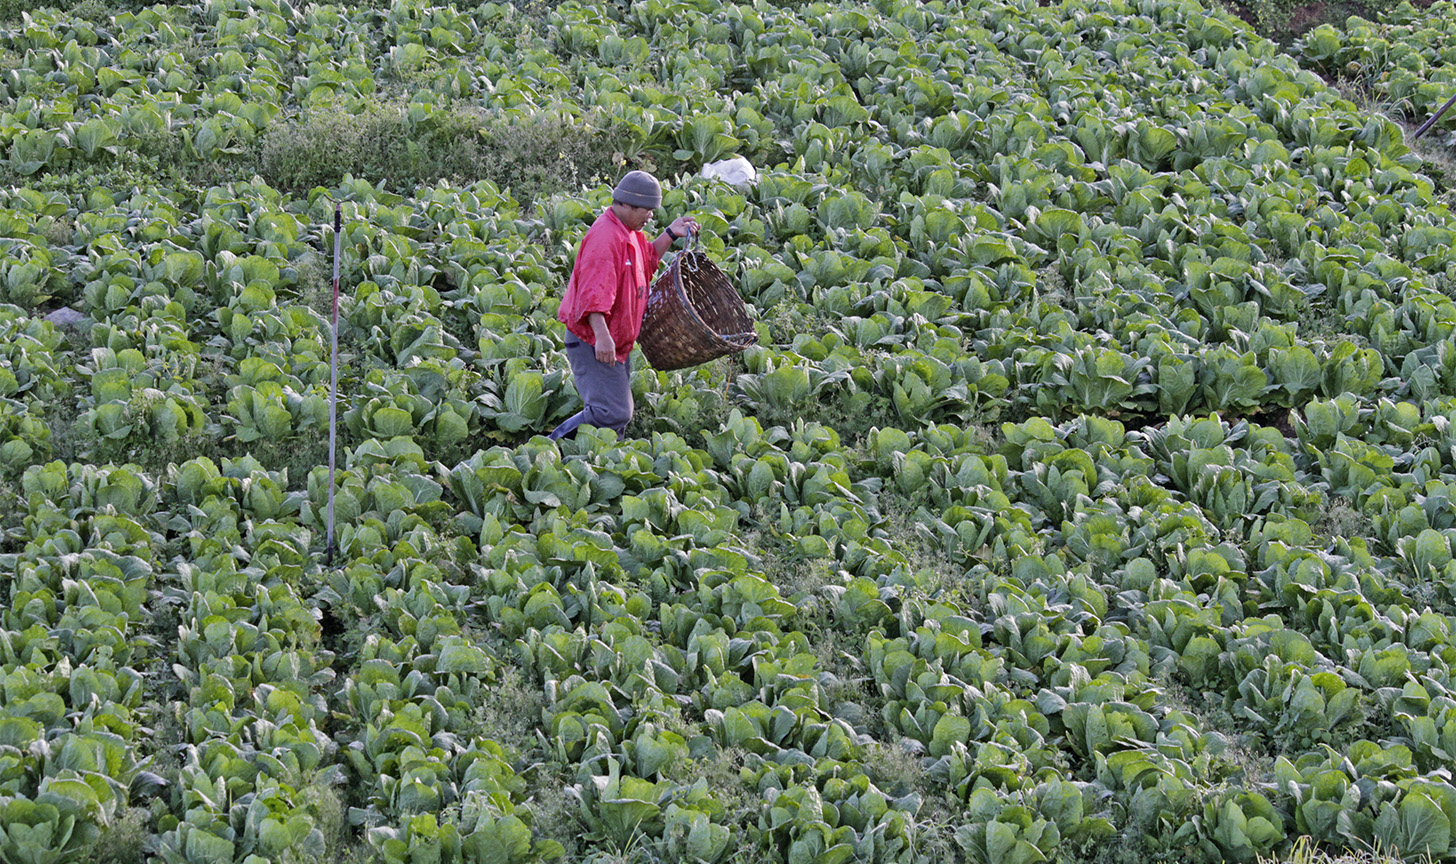 FARMING IN BENGUET. A farmer checks on a farm planted with lettuce in preparation for harvest in Barangay Paoay, Atok town in Benguet province. Photo by Mau Victa/Rappler